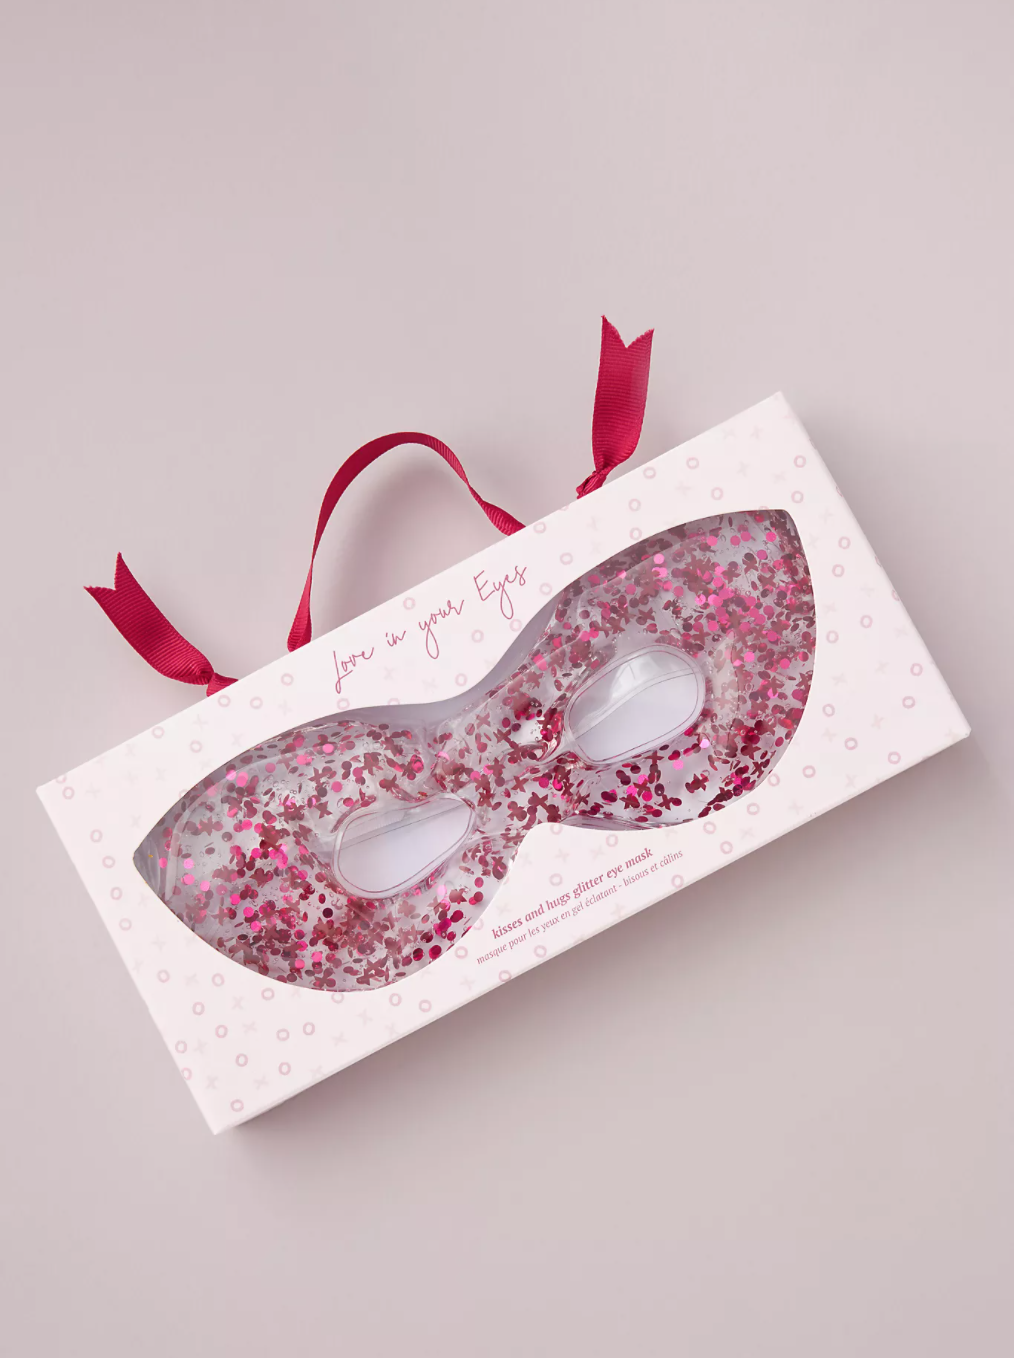 glitter gel eye mask filled with glitter